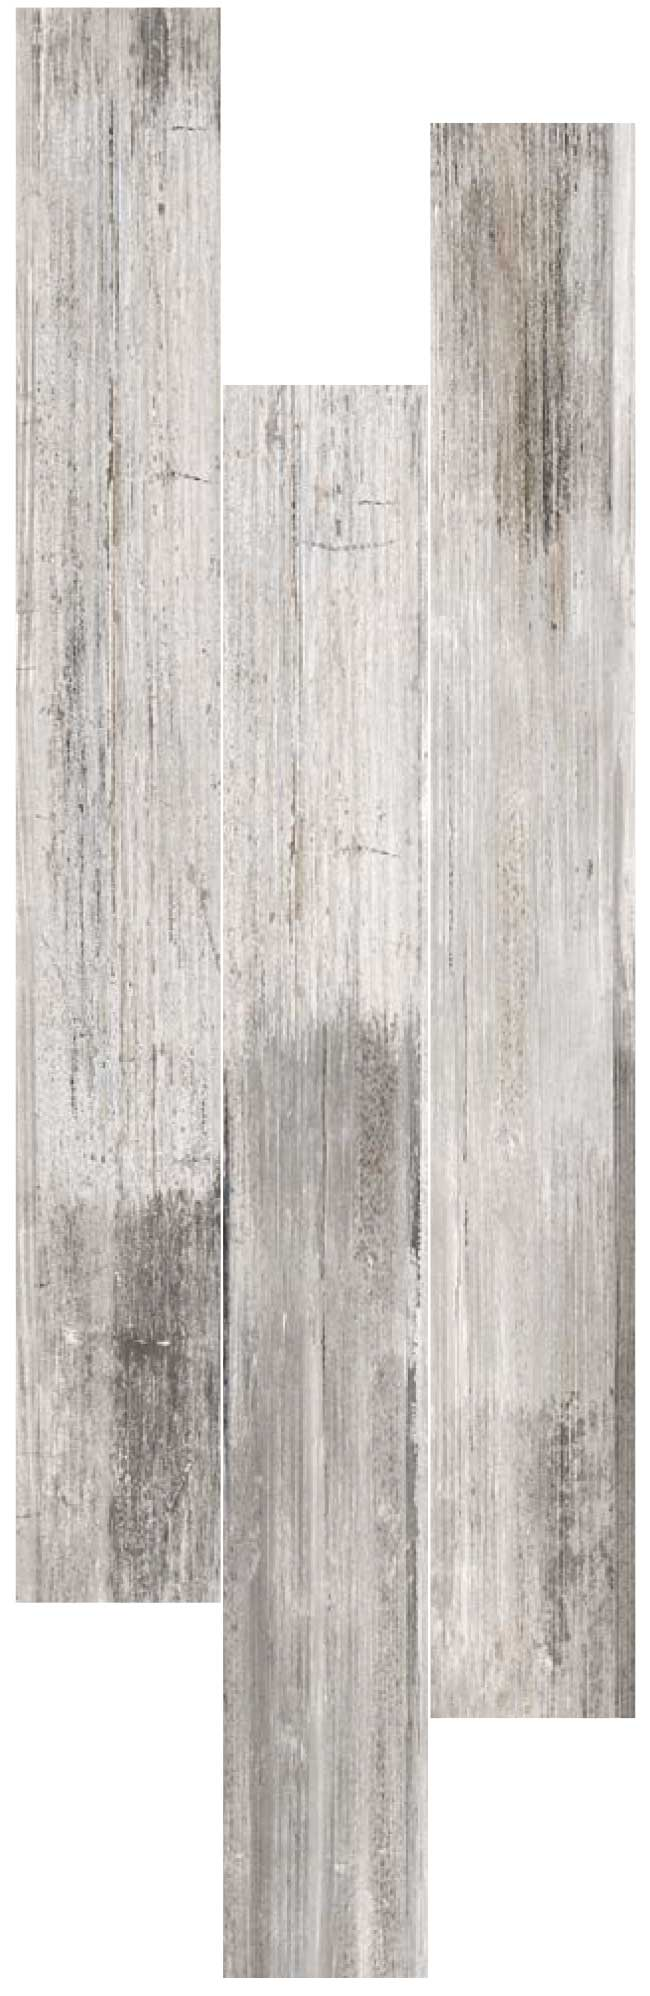 Sant Agostino Pictart Grey CSAPICGR15 Boden-/Wandfliese 120x15